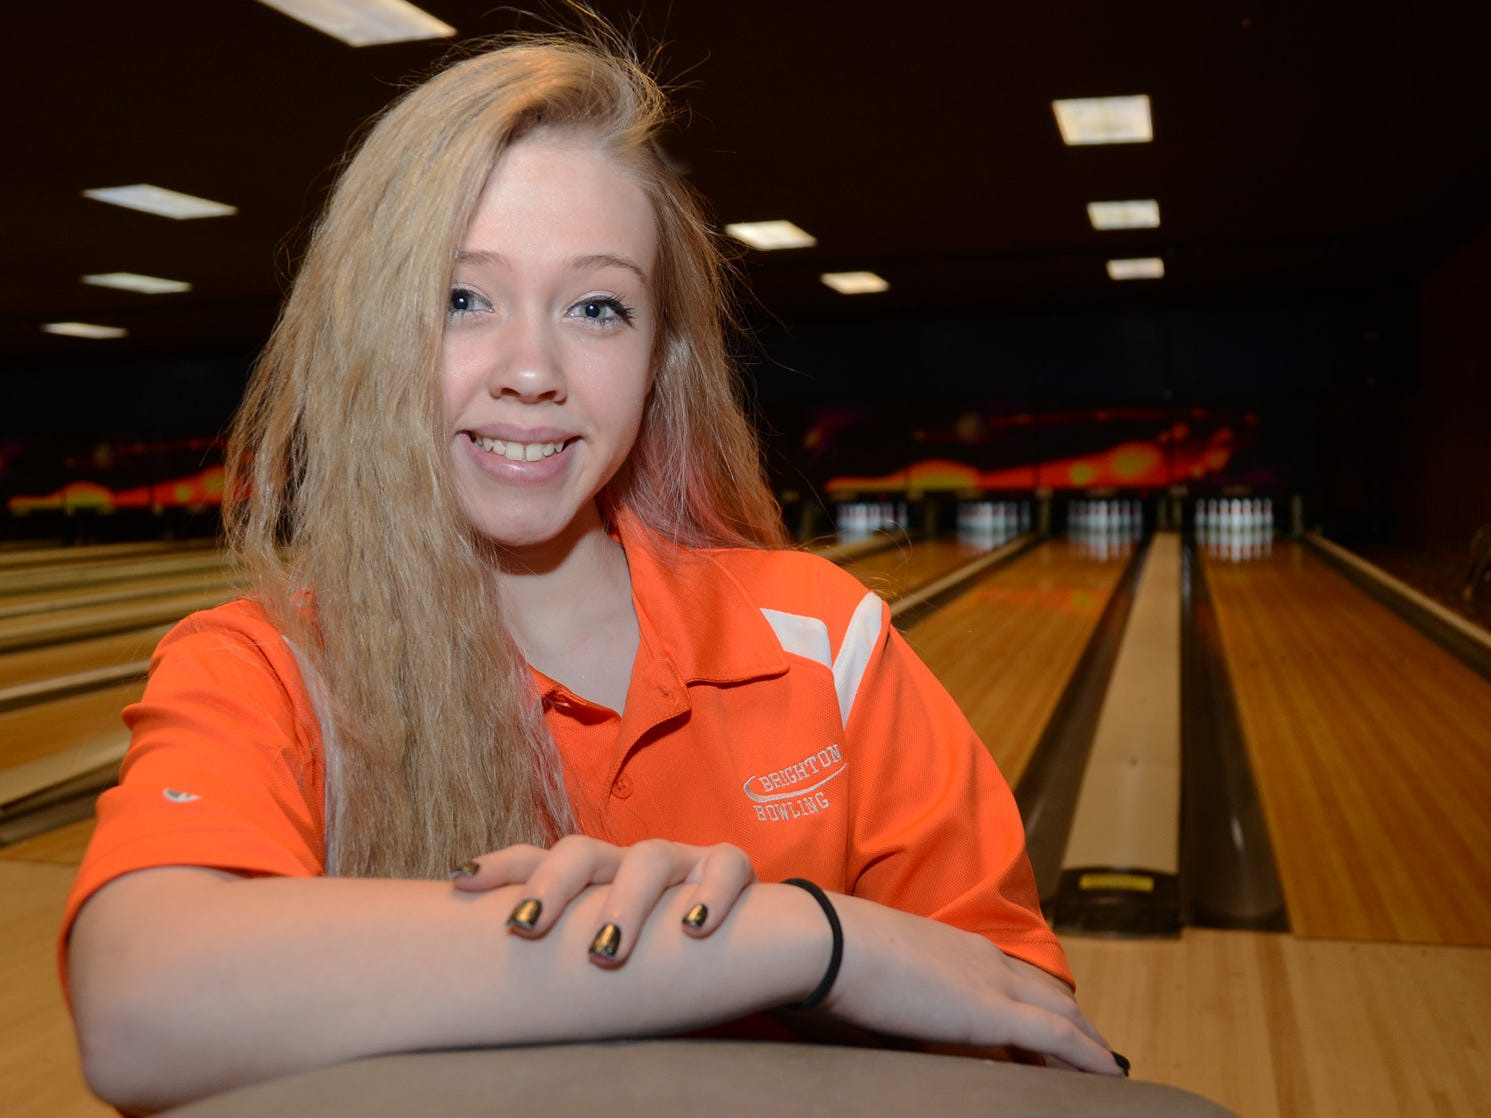 Brighton's Natalie Klein won regionals and placed among the top eight at the Division 1 state finals en route to becoming the All-County Girls Bowler of the Year.